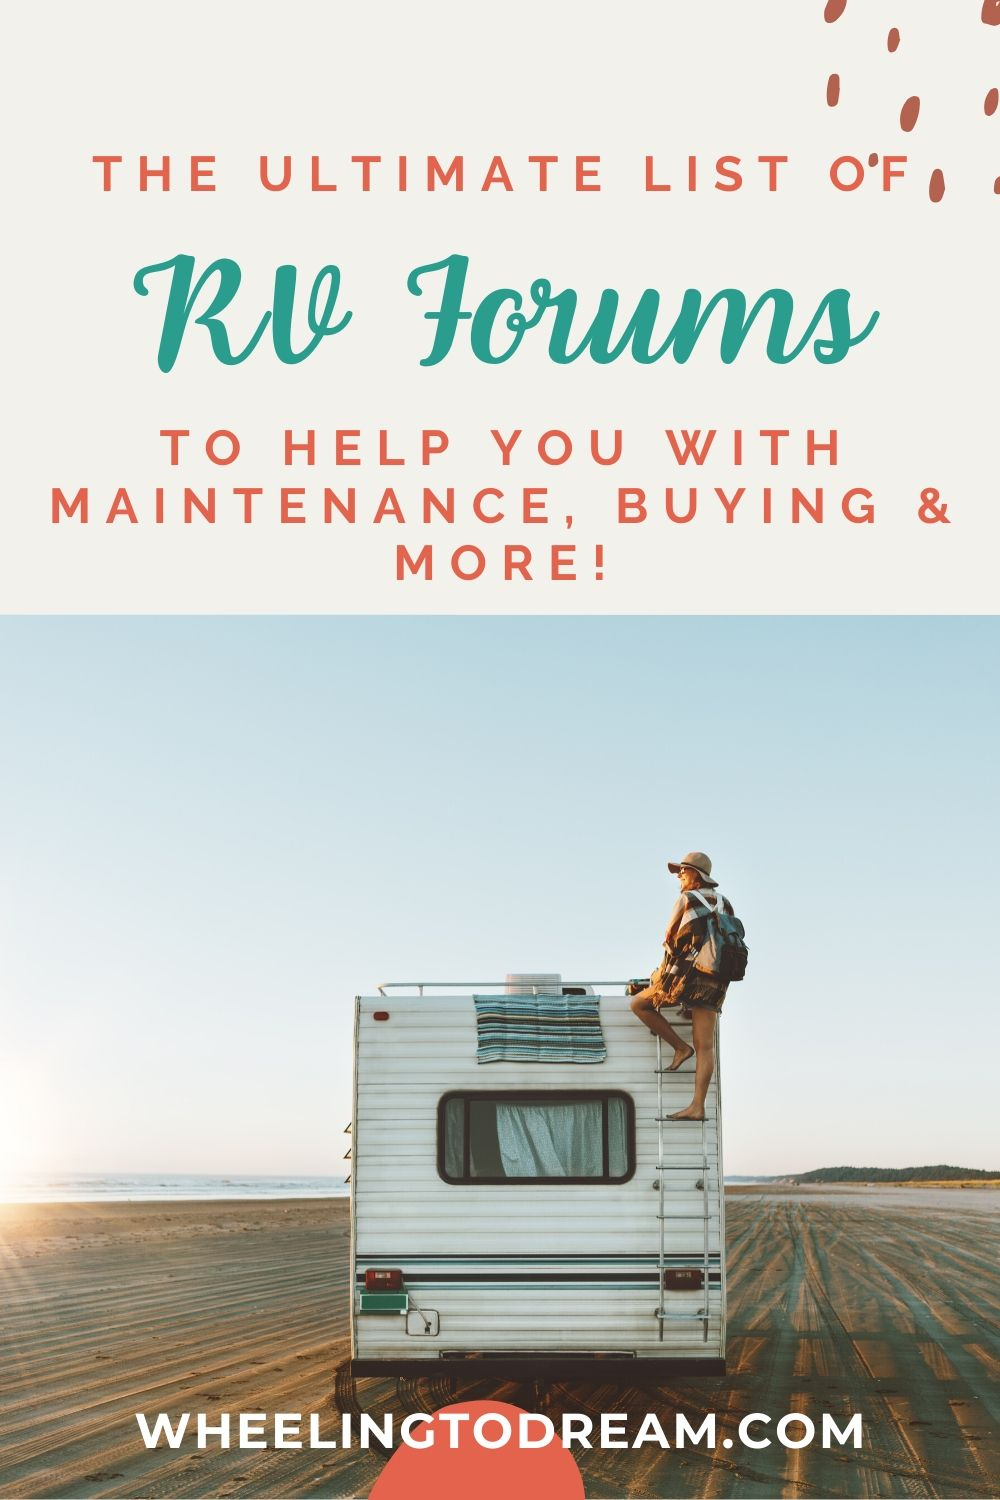 I can't count how many hours I have spent filtering through RV forums after something disastrous has happened to our coach. Make your RV living journey easier and build an RV community around you. The RV lifestyle isn't one you want to do alone. This list of RV forums is going to help you with RV living full-time. This full time travel life is such a great experience but if you run into RV maintenance issues or need help buying an RV then you will want guidance. #rvliving #rvlifestyle #rvlife